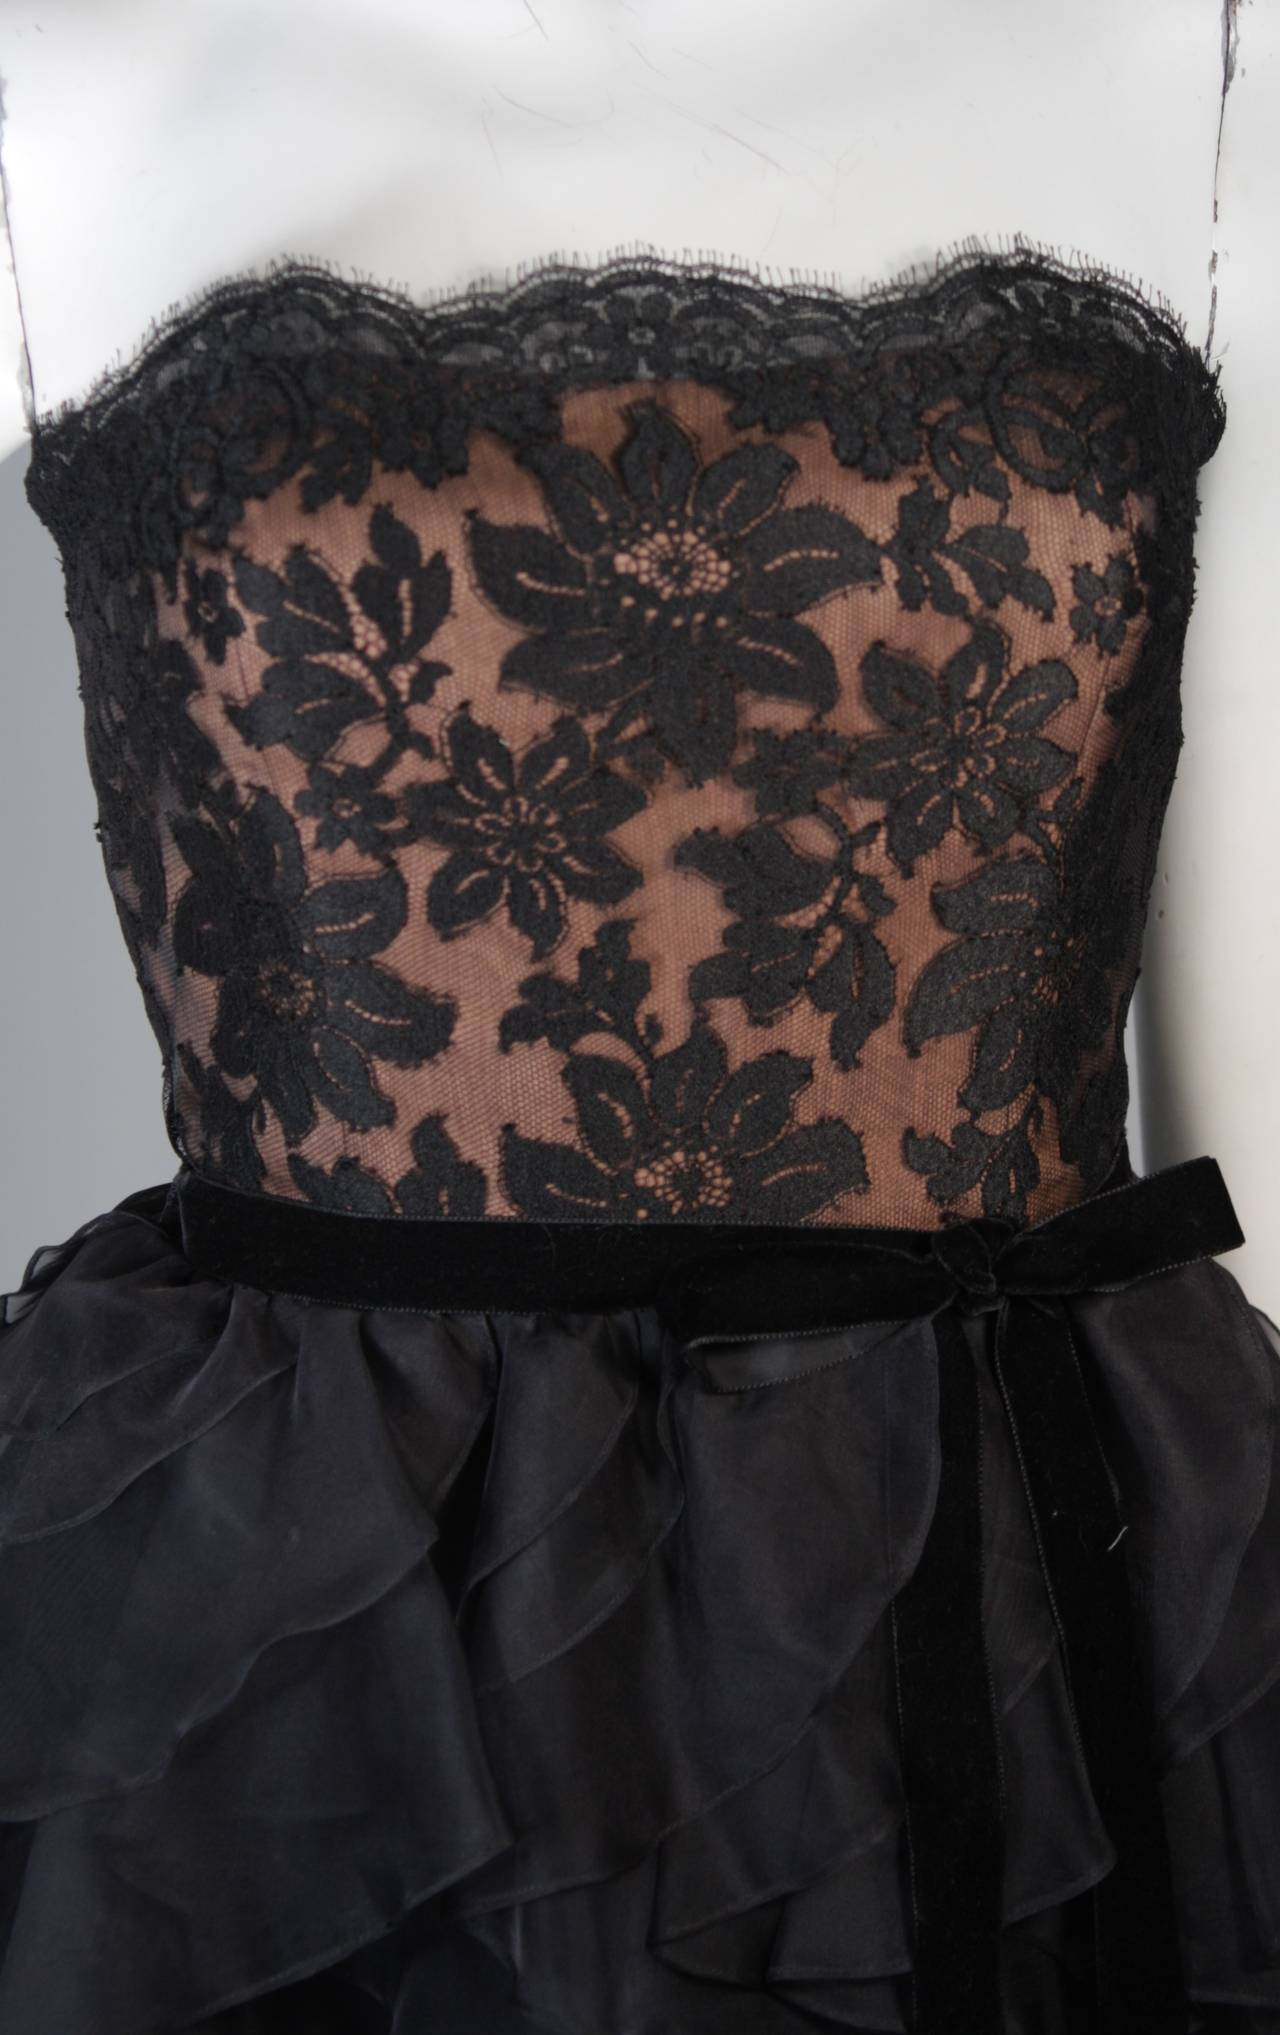 Jill Richards Black Lace Cocktail Dress with Layered Silk Skirt Size 6 In Excellent Condition For Sale In Los Angeles, CA